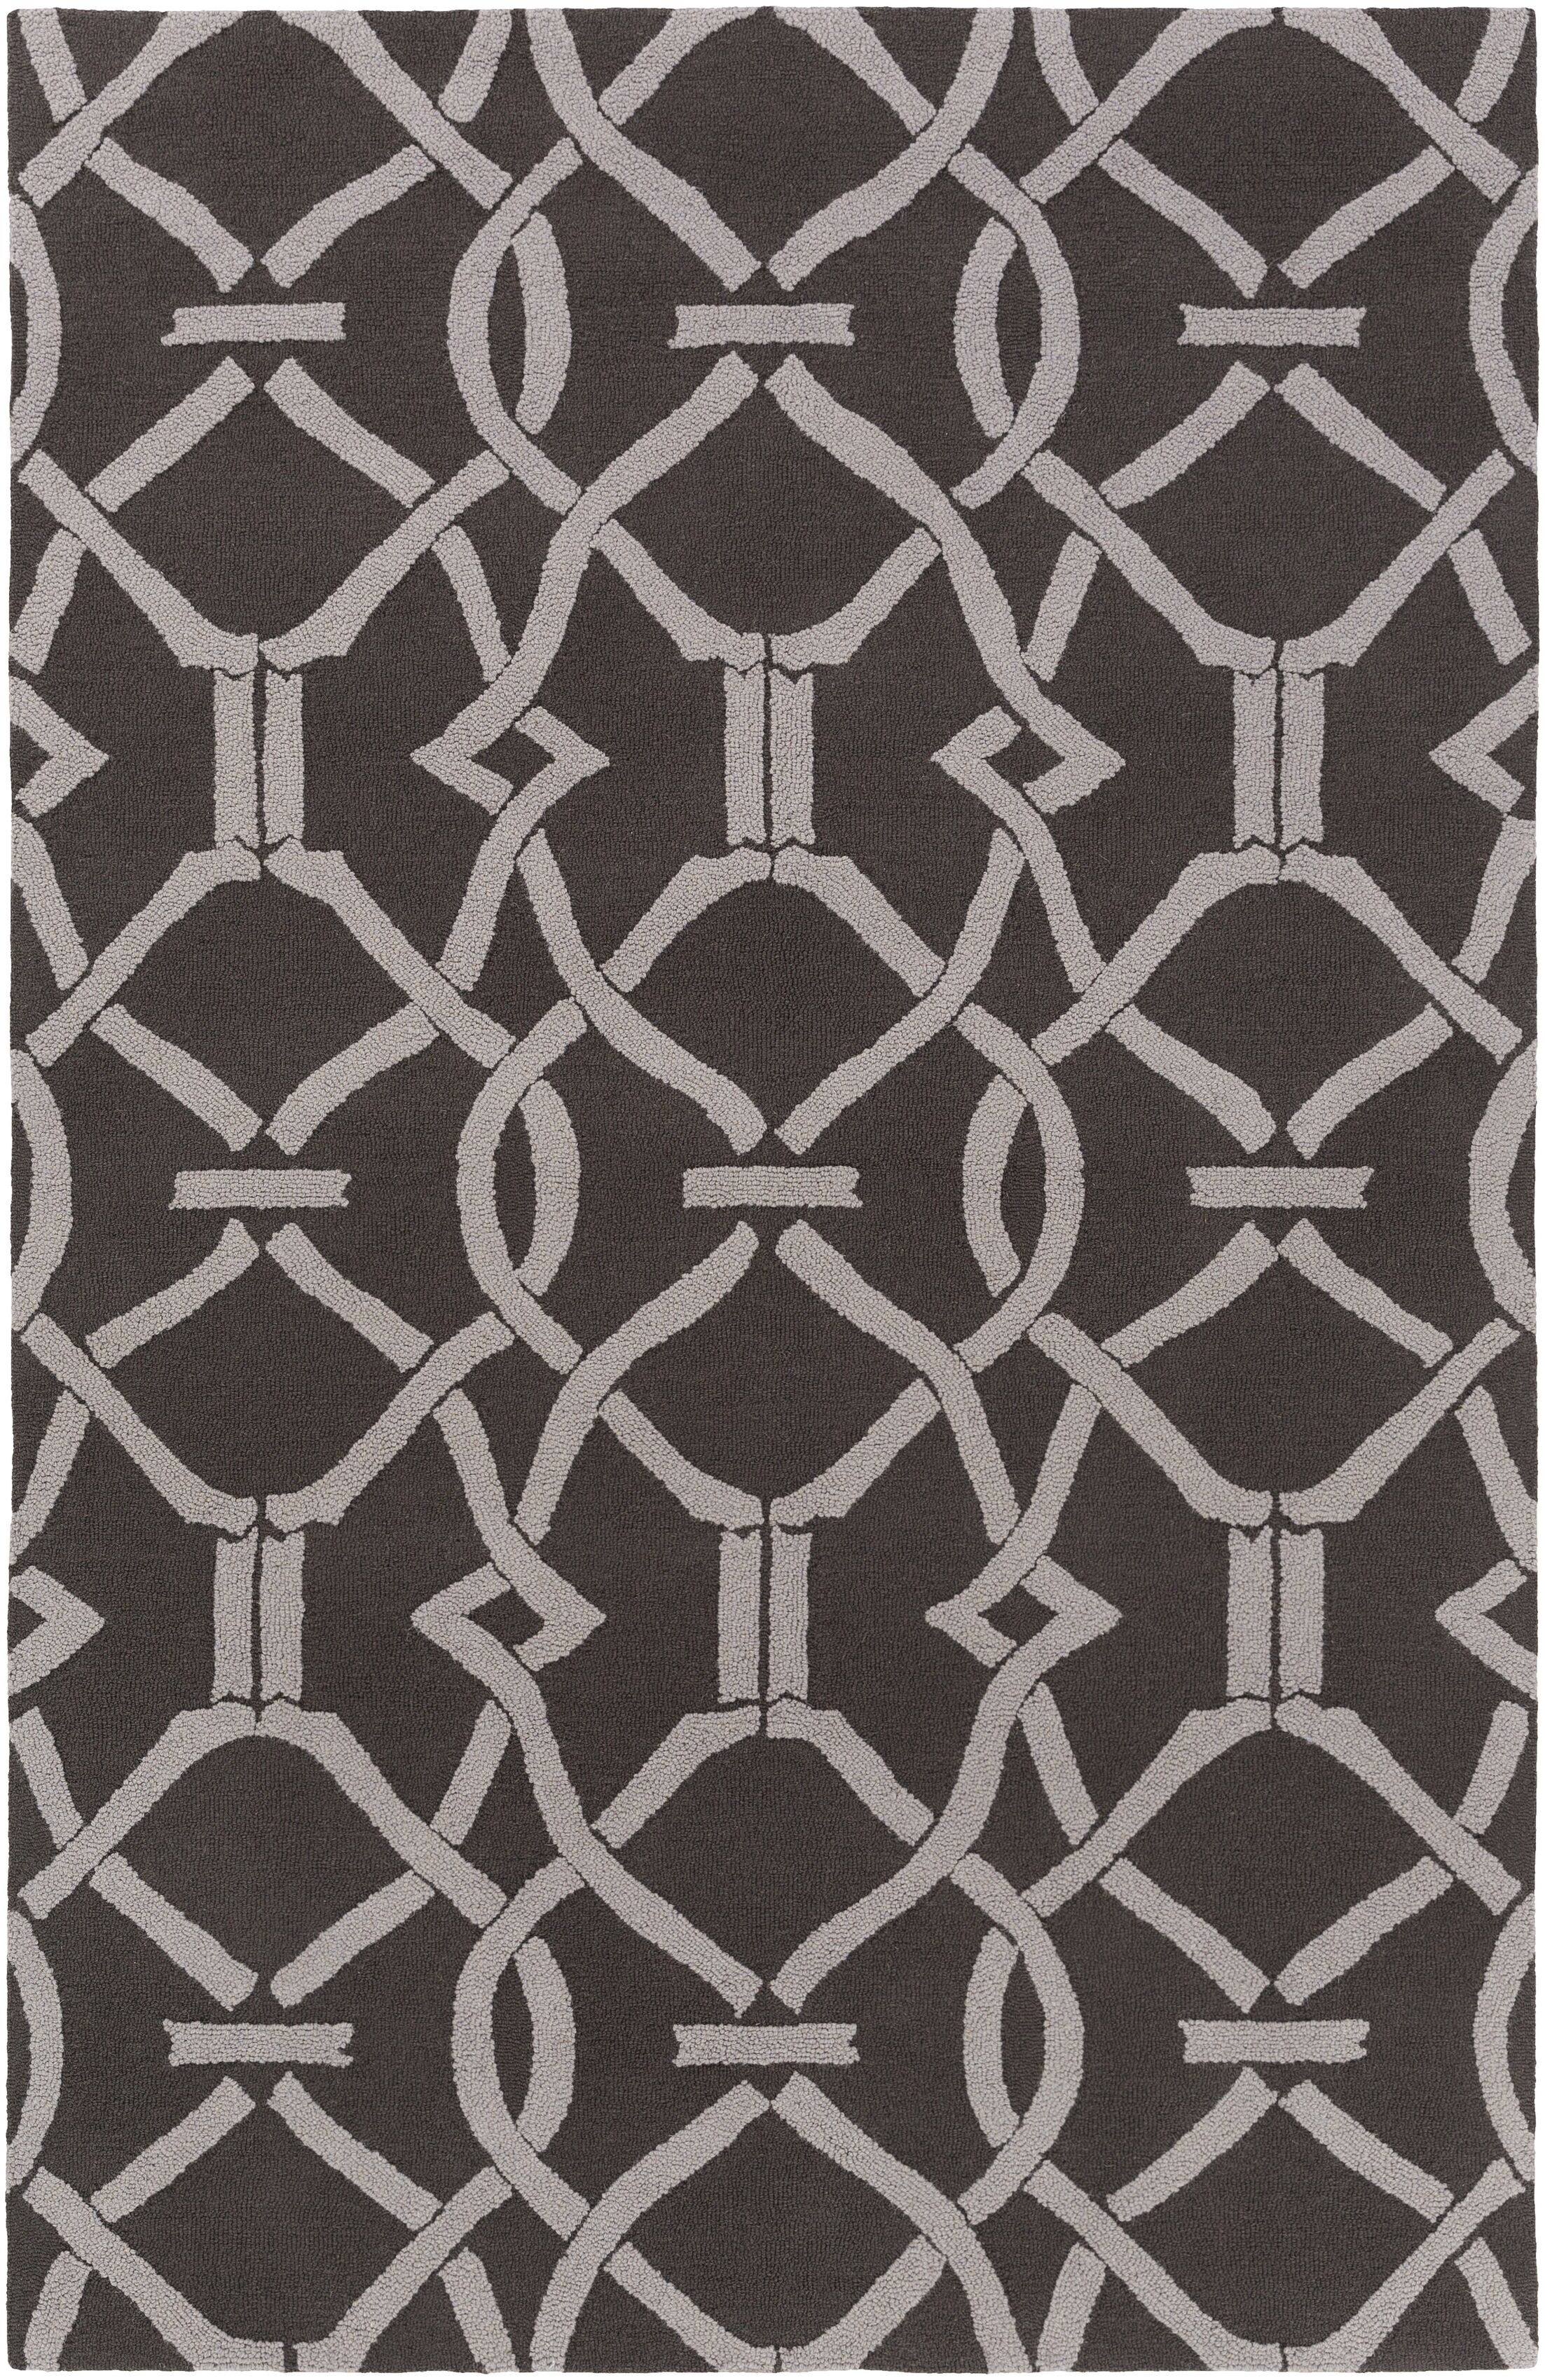 Dyess Hand-Crafted Slate/Gray Area Rug Rug Size: Rectangle 8' x 11'